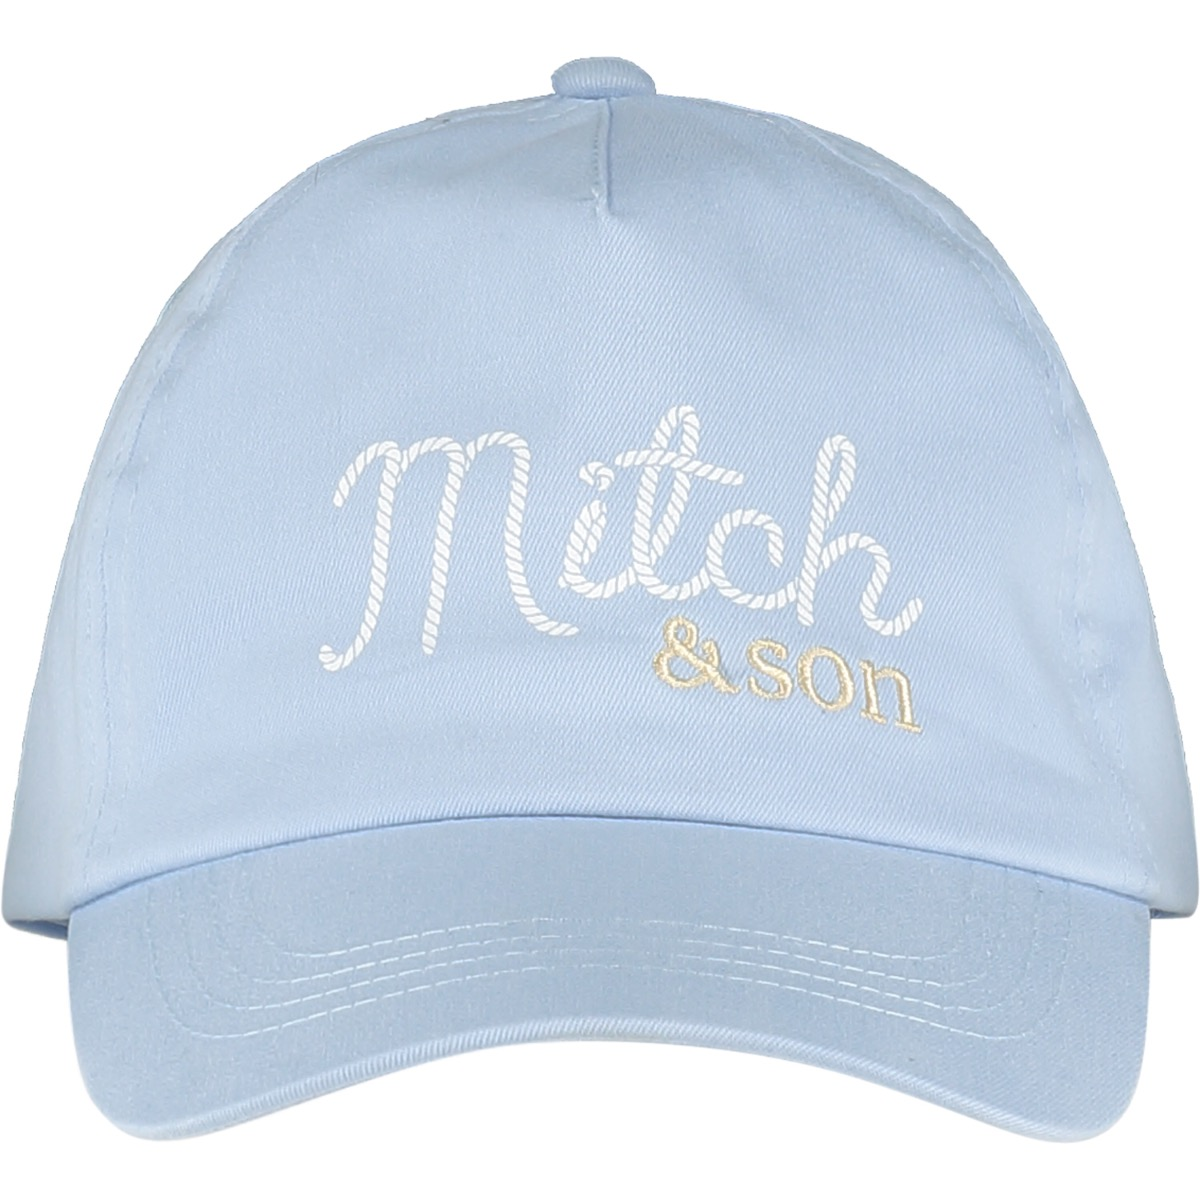 Mitch & Son Blue Biggins Cap MS21123